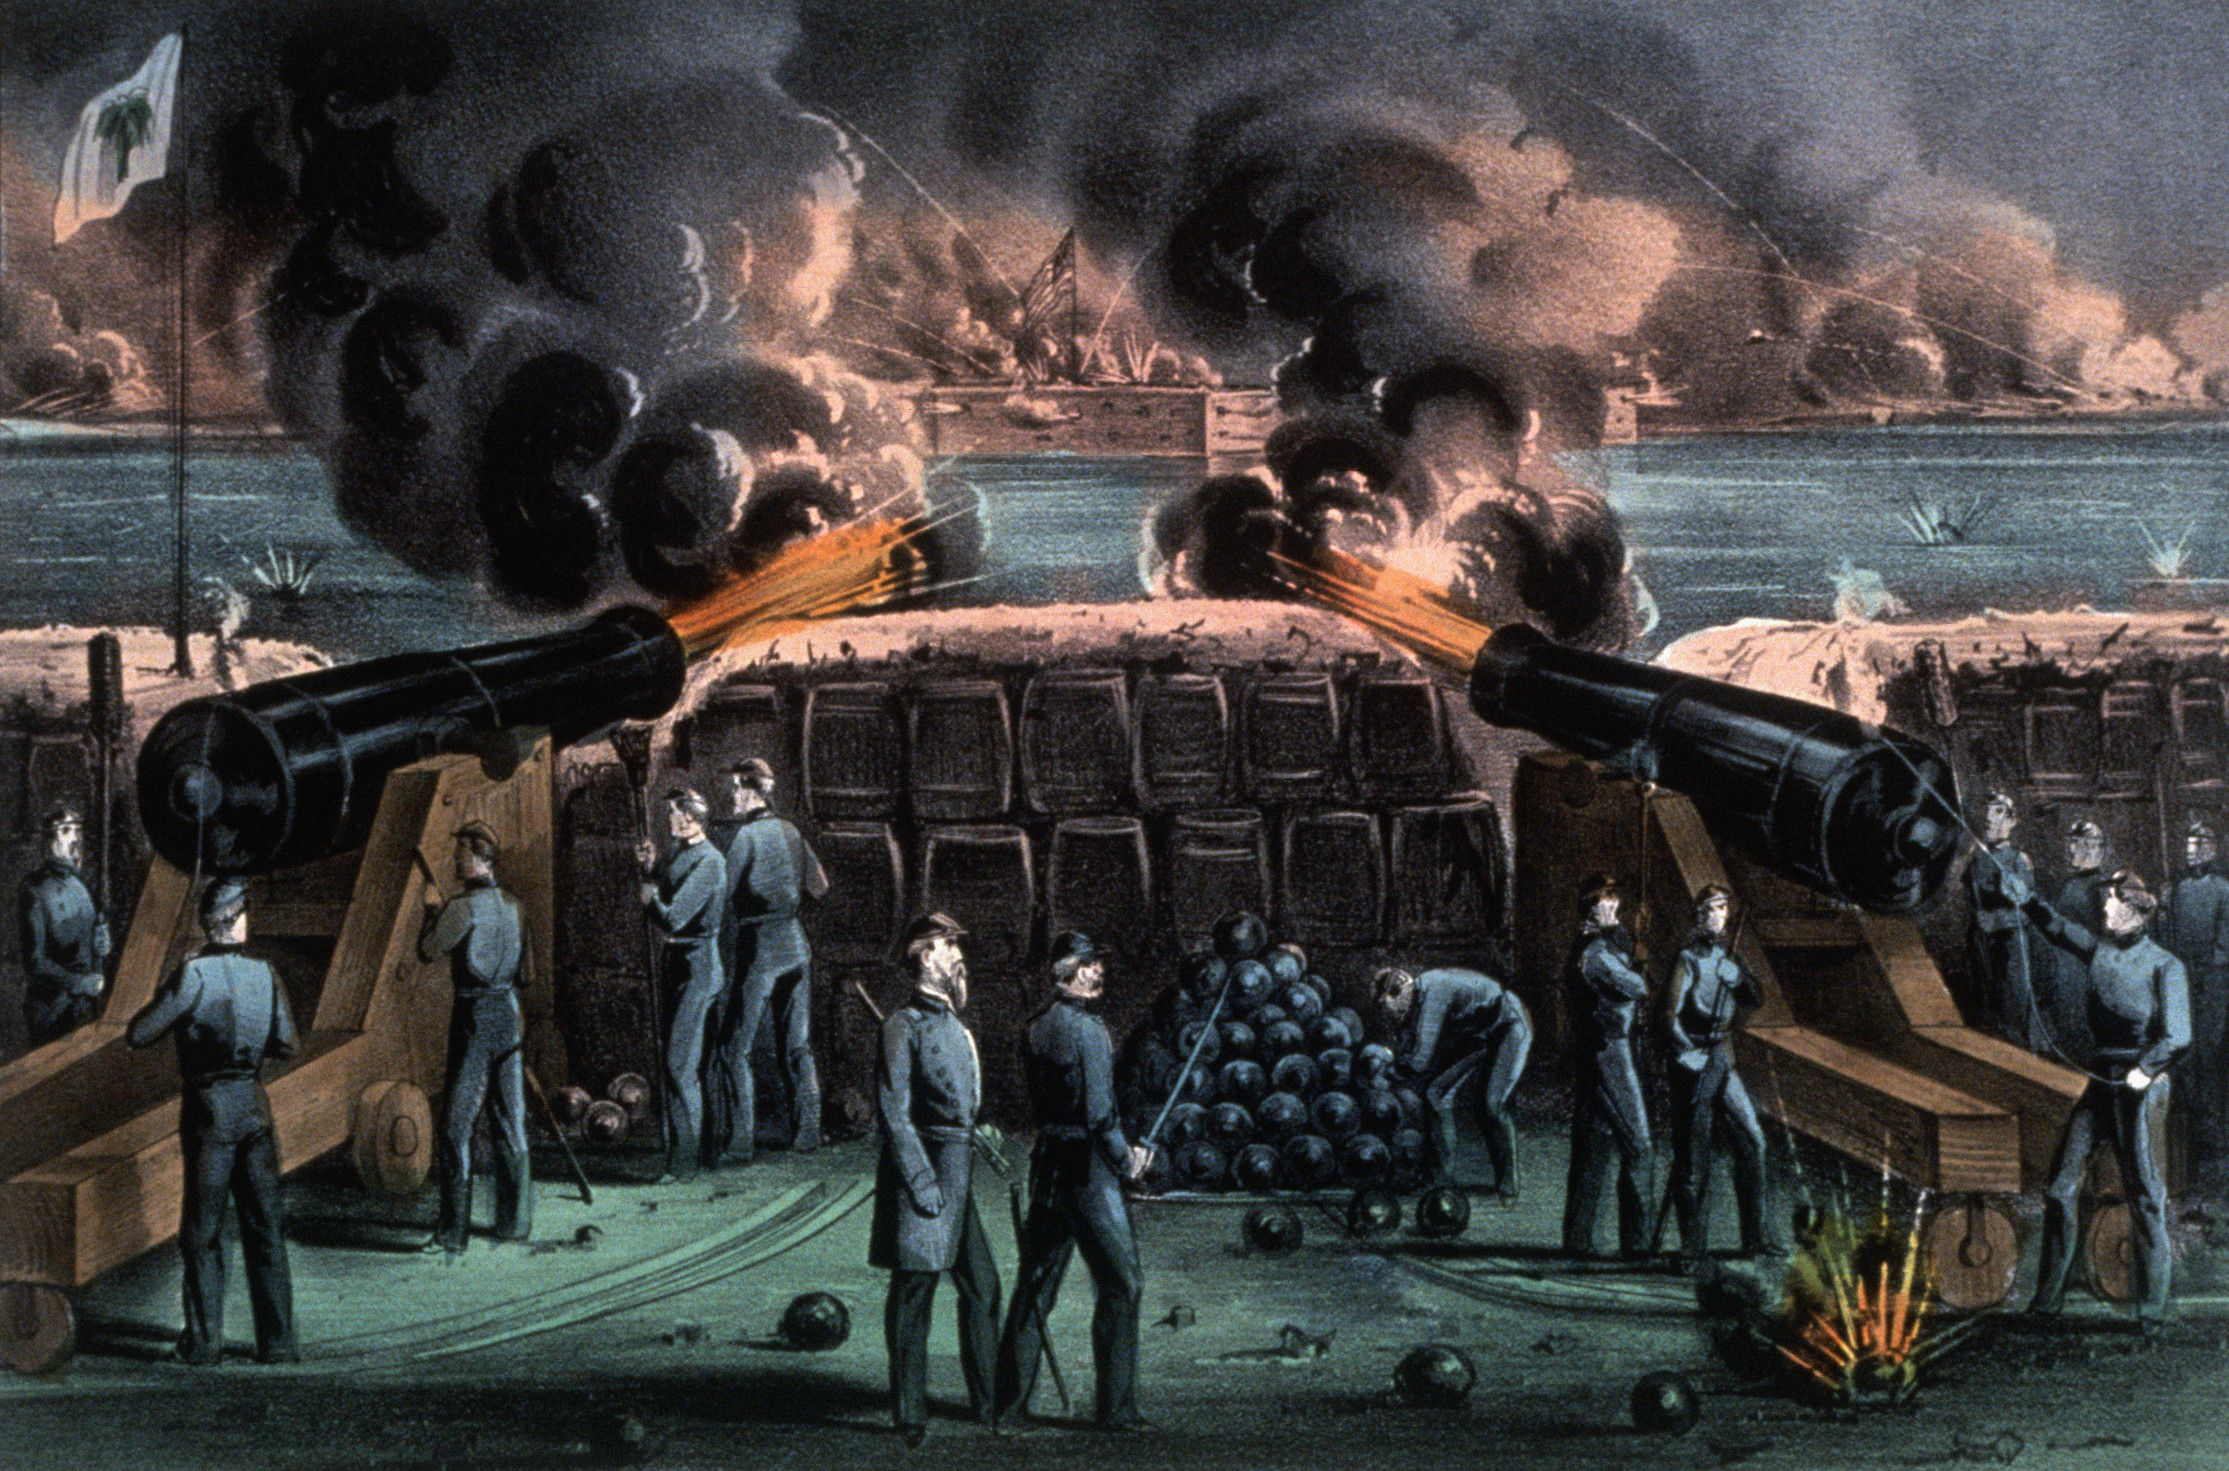 an analysis of the united states civil war and the capture of fort pickens and fort sumter Civil war events of 1861 [the at port royal entrance by united states squadron nov 8 -- capture of the rebel batteries by fort pickens and the ships-of-war.